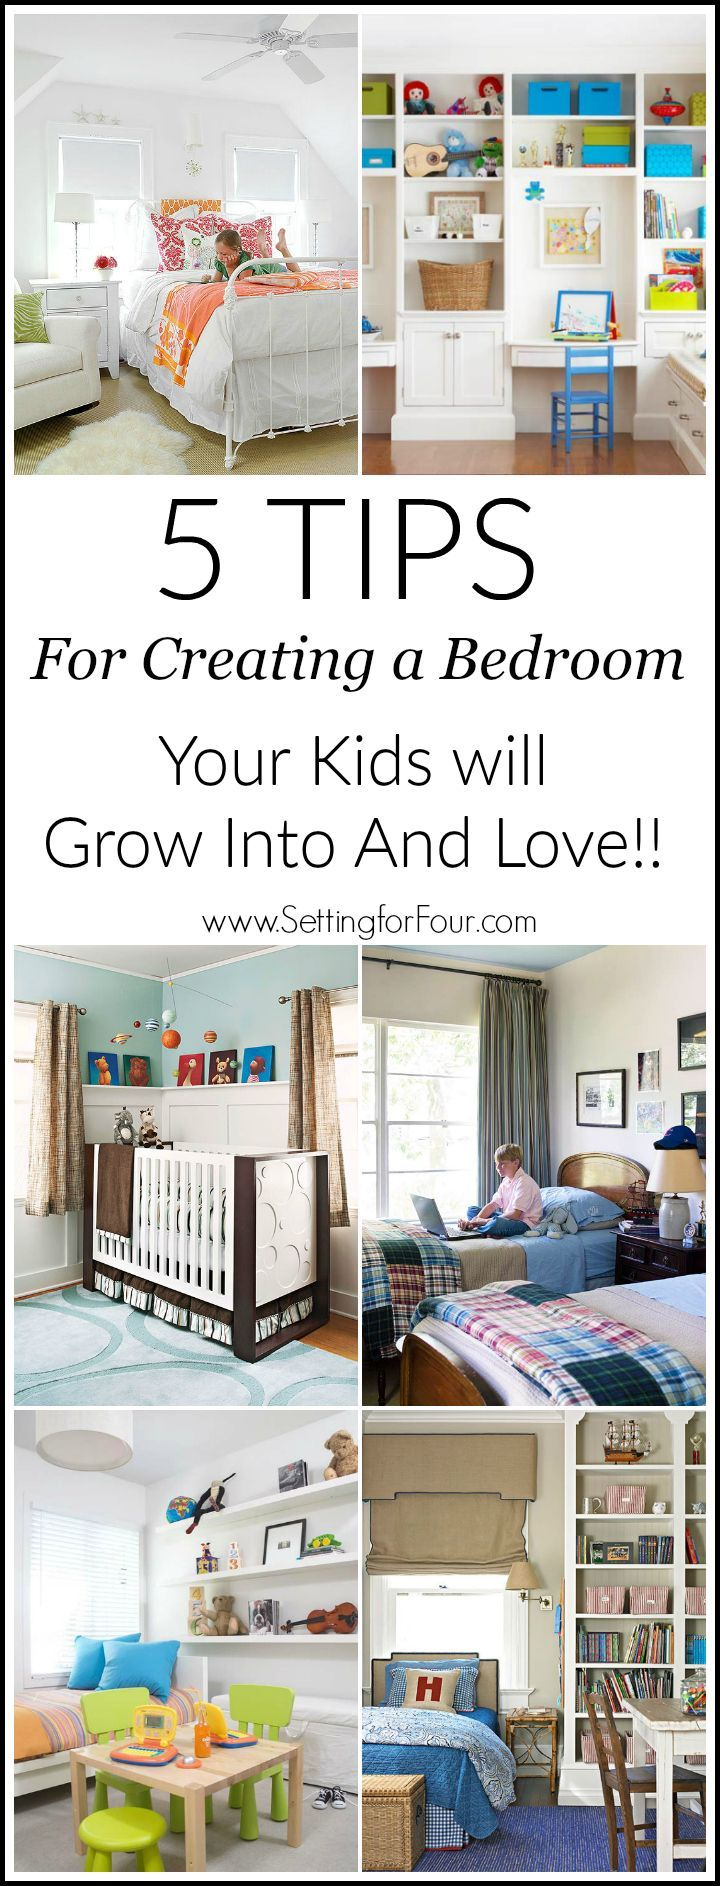 173 best DIY Kids Bedrooms images on Pinterest | Kid bedrooms ...